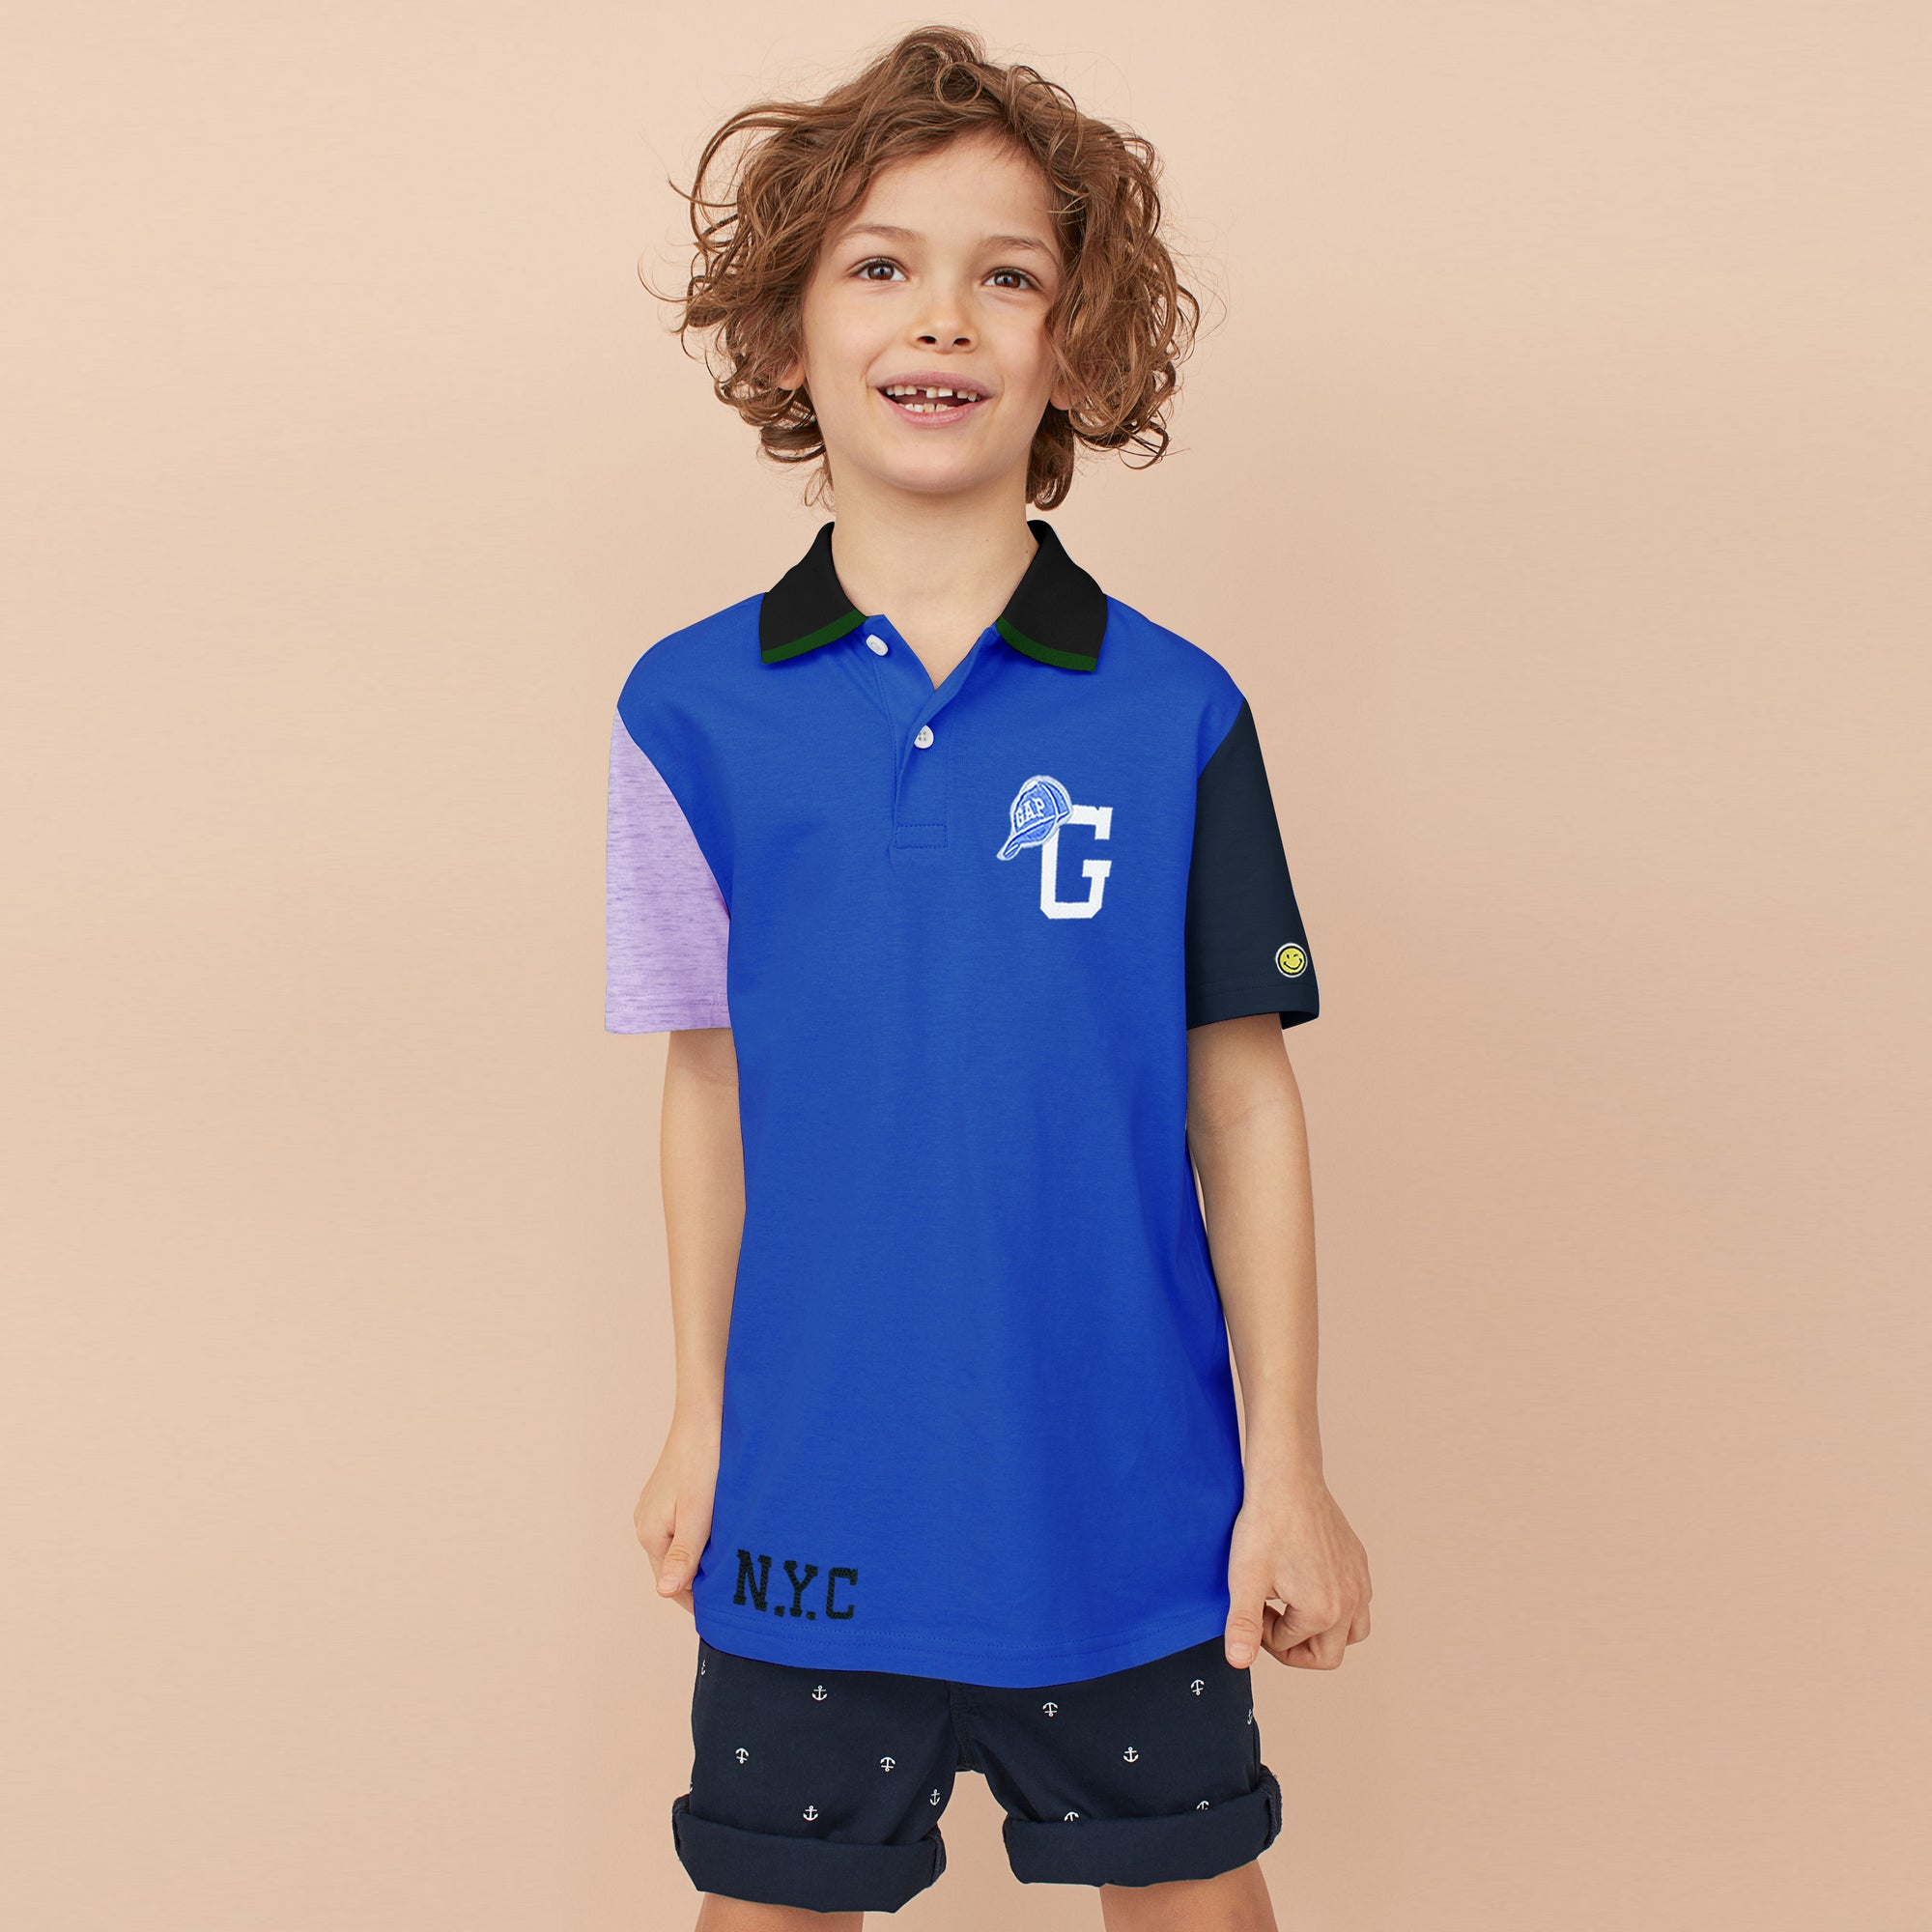 brandsego - GAP Half Sleeve P.Q Polo Shirt For Kids-Blue with Panel-BE8516